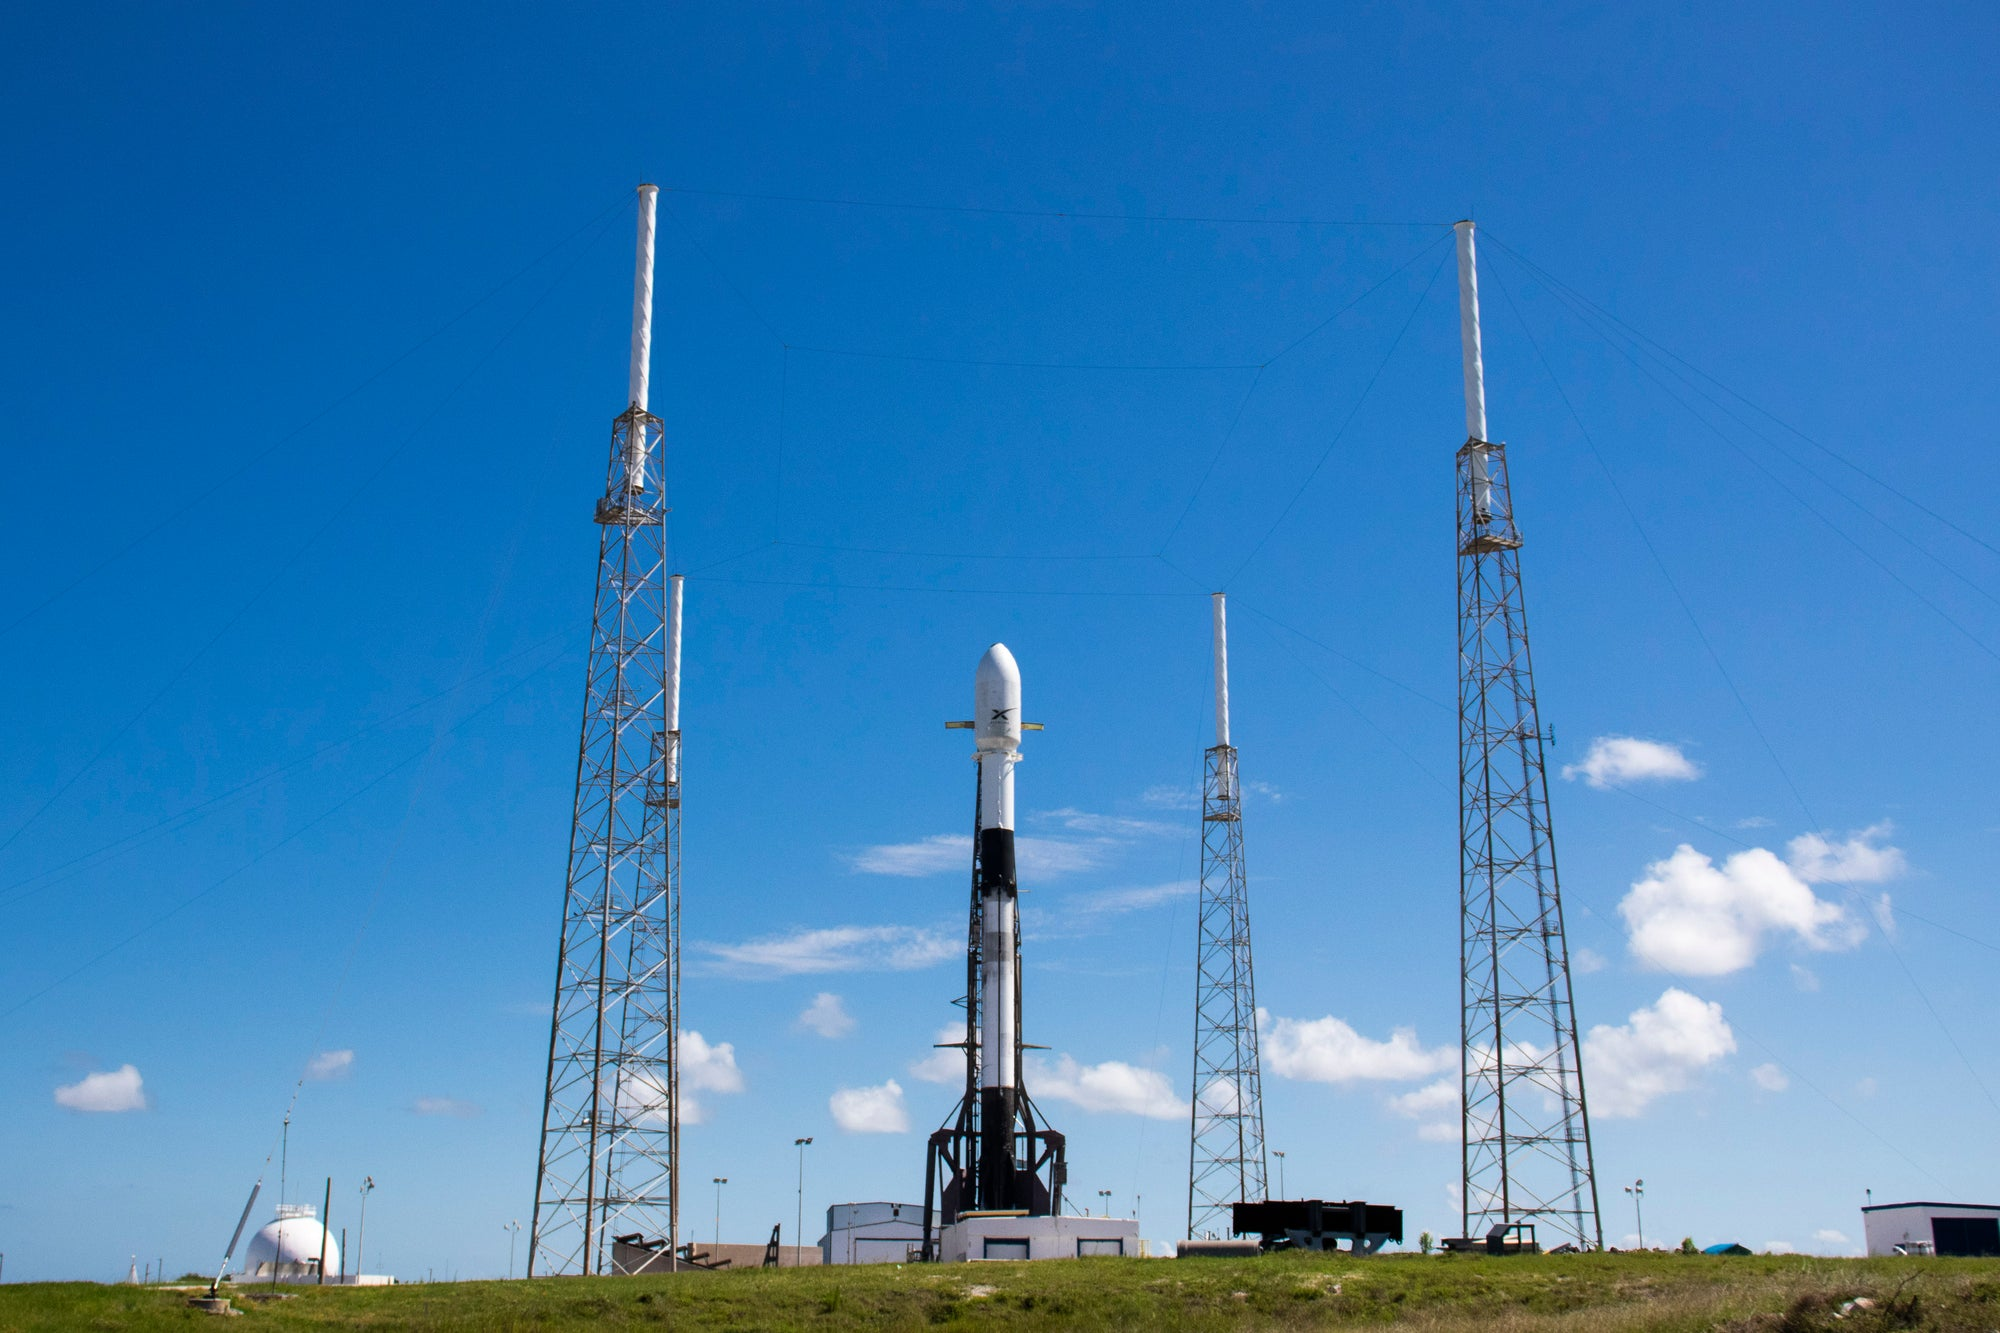 SpaceX's Falcon 9 rocket will deploy 3 Planet SkySats and 58 Starlink satellites -Watch It Live!